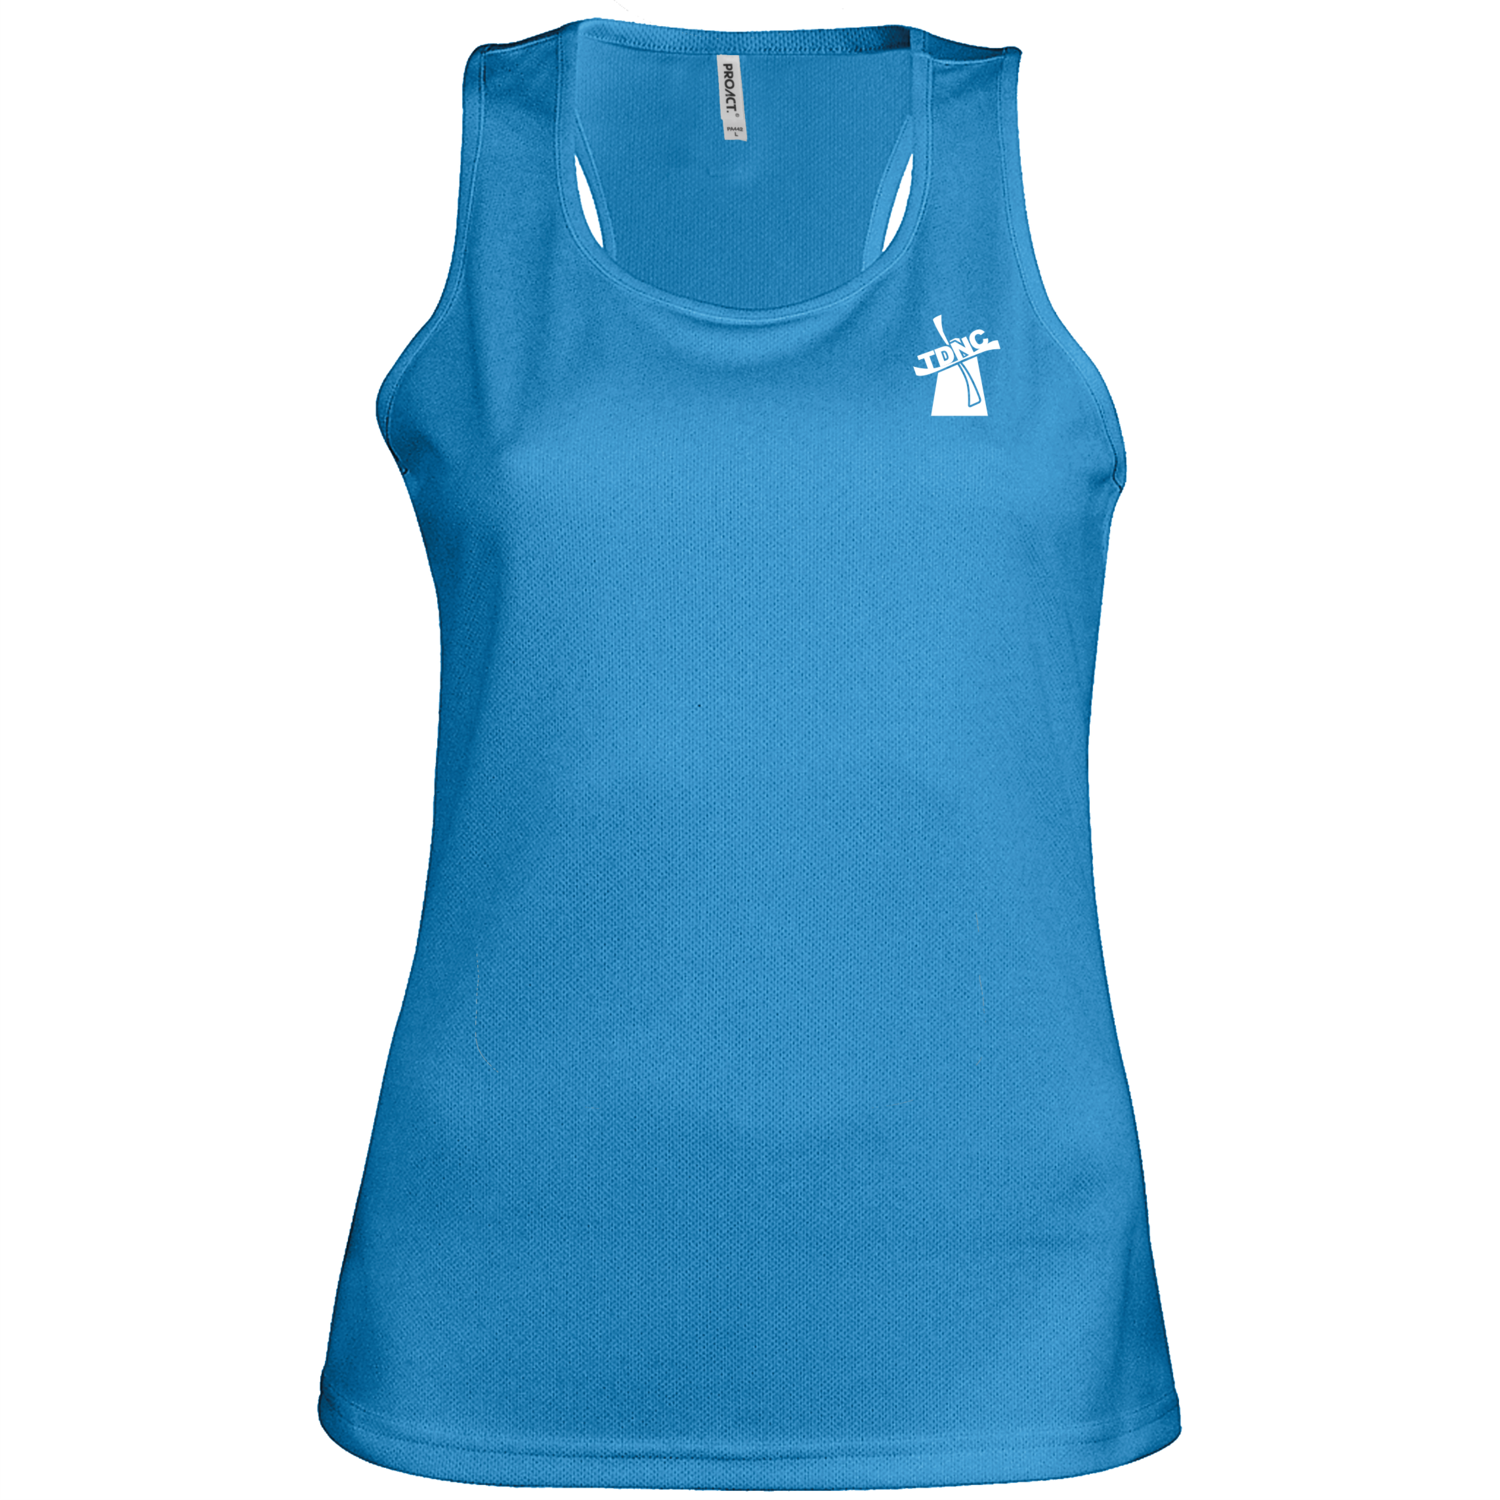 The Downs Netball Club training vest